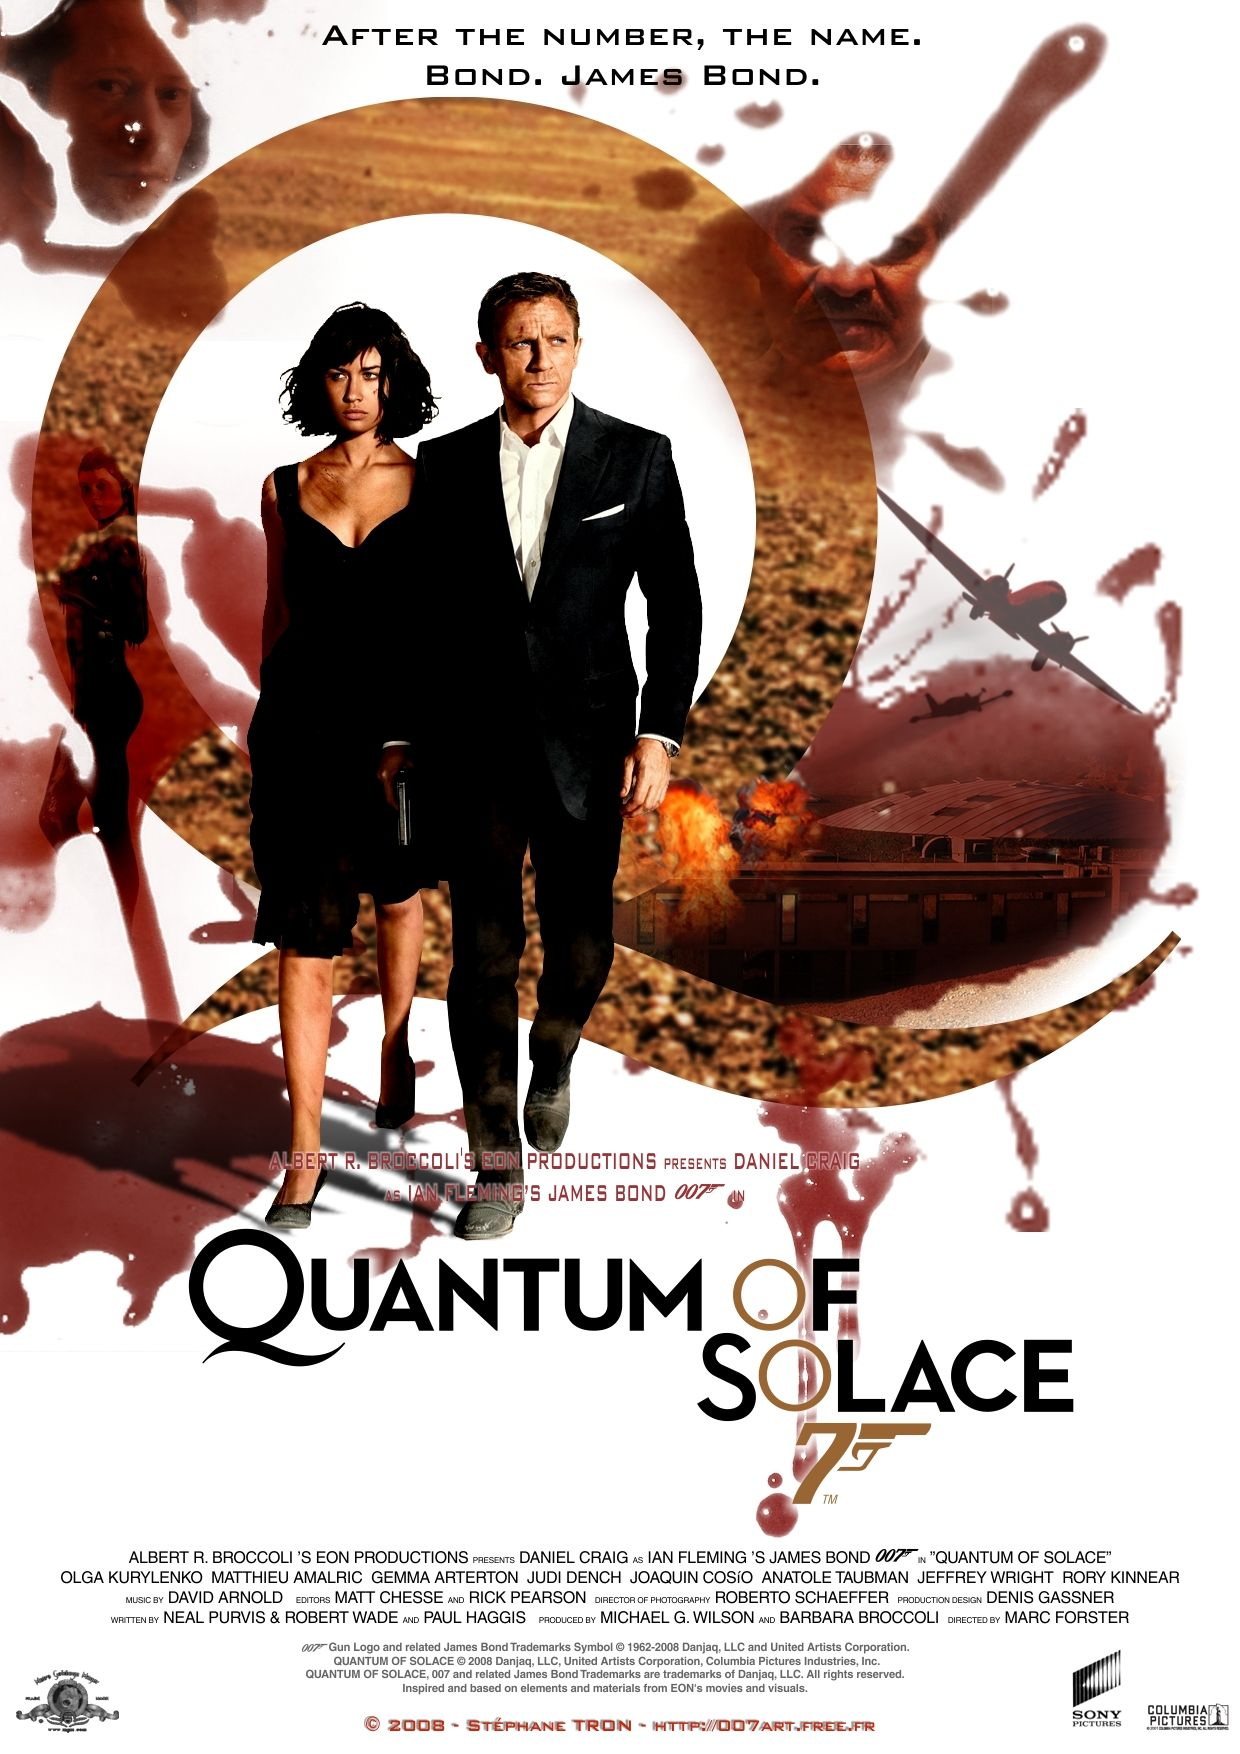 Quantum Of Solace Poster 22 Bond Movies James Bond Best Bond